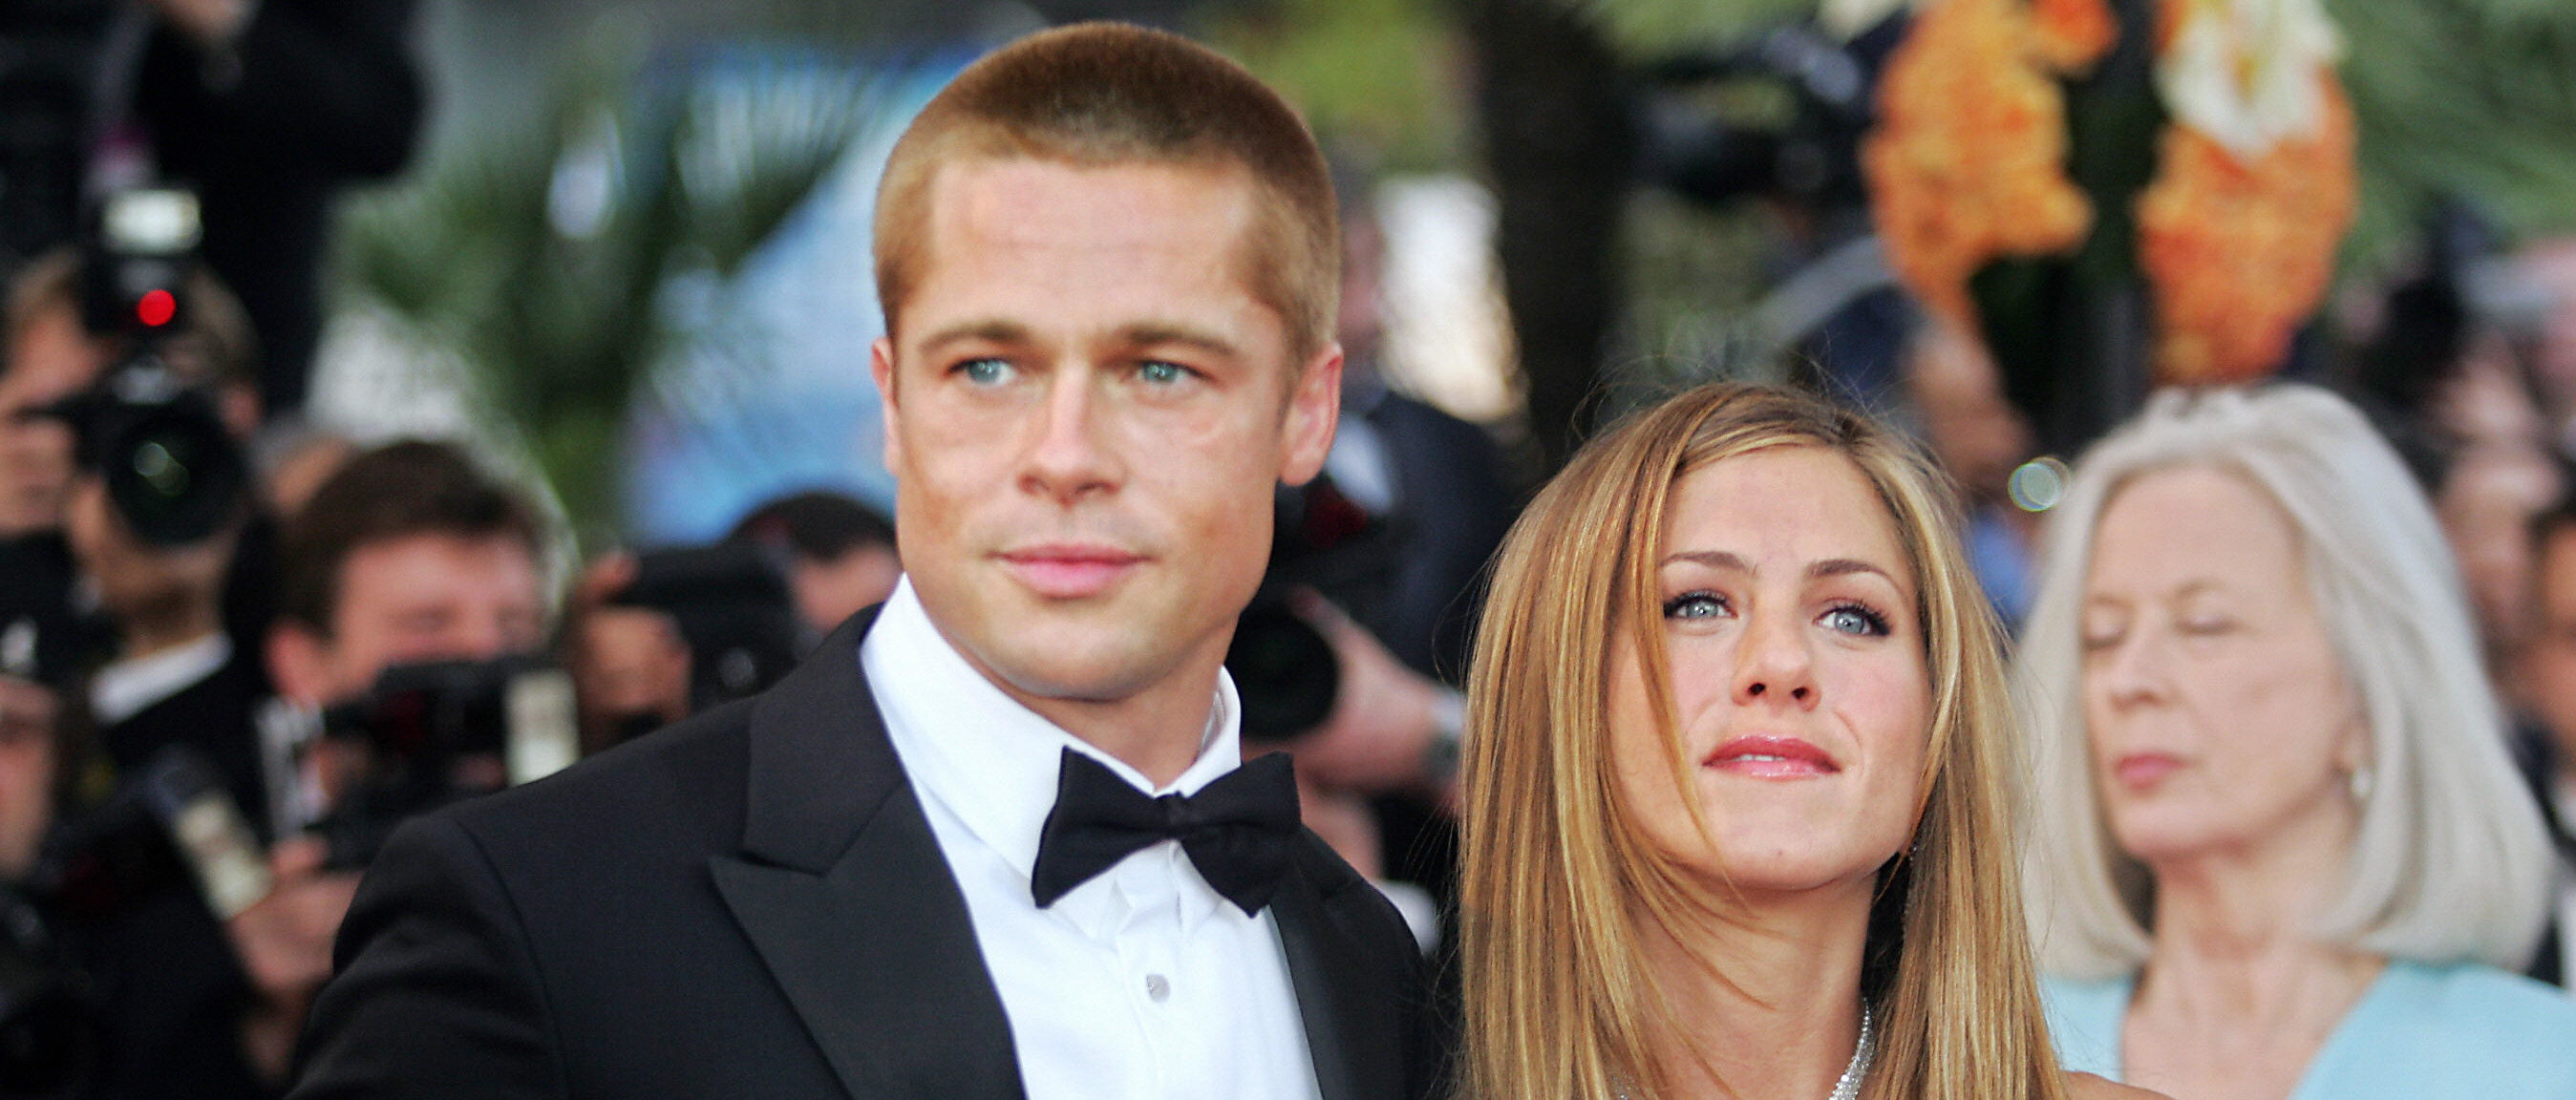 """US actor Brad Pitt and his wife Jennifer Aniston arrive for the official projection of US director Wolfgang Petersen's (5R) film """"Troy"""" , 13 May 2004, at the 57th Cannes Film Festival in the French Riviera town. Hollywood took over the French Riviera today as Brad Pitt and his co-stars of the epic movie arrived to present their 175 million dollar (147 million euro)-plus swords-and-sandals feature, being shown out of competition, in the blaze of Cannes publicity. (Photo credit BORIS HORVAT/AFP/Getty Images)"""